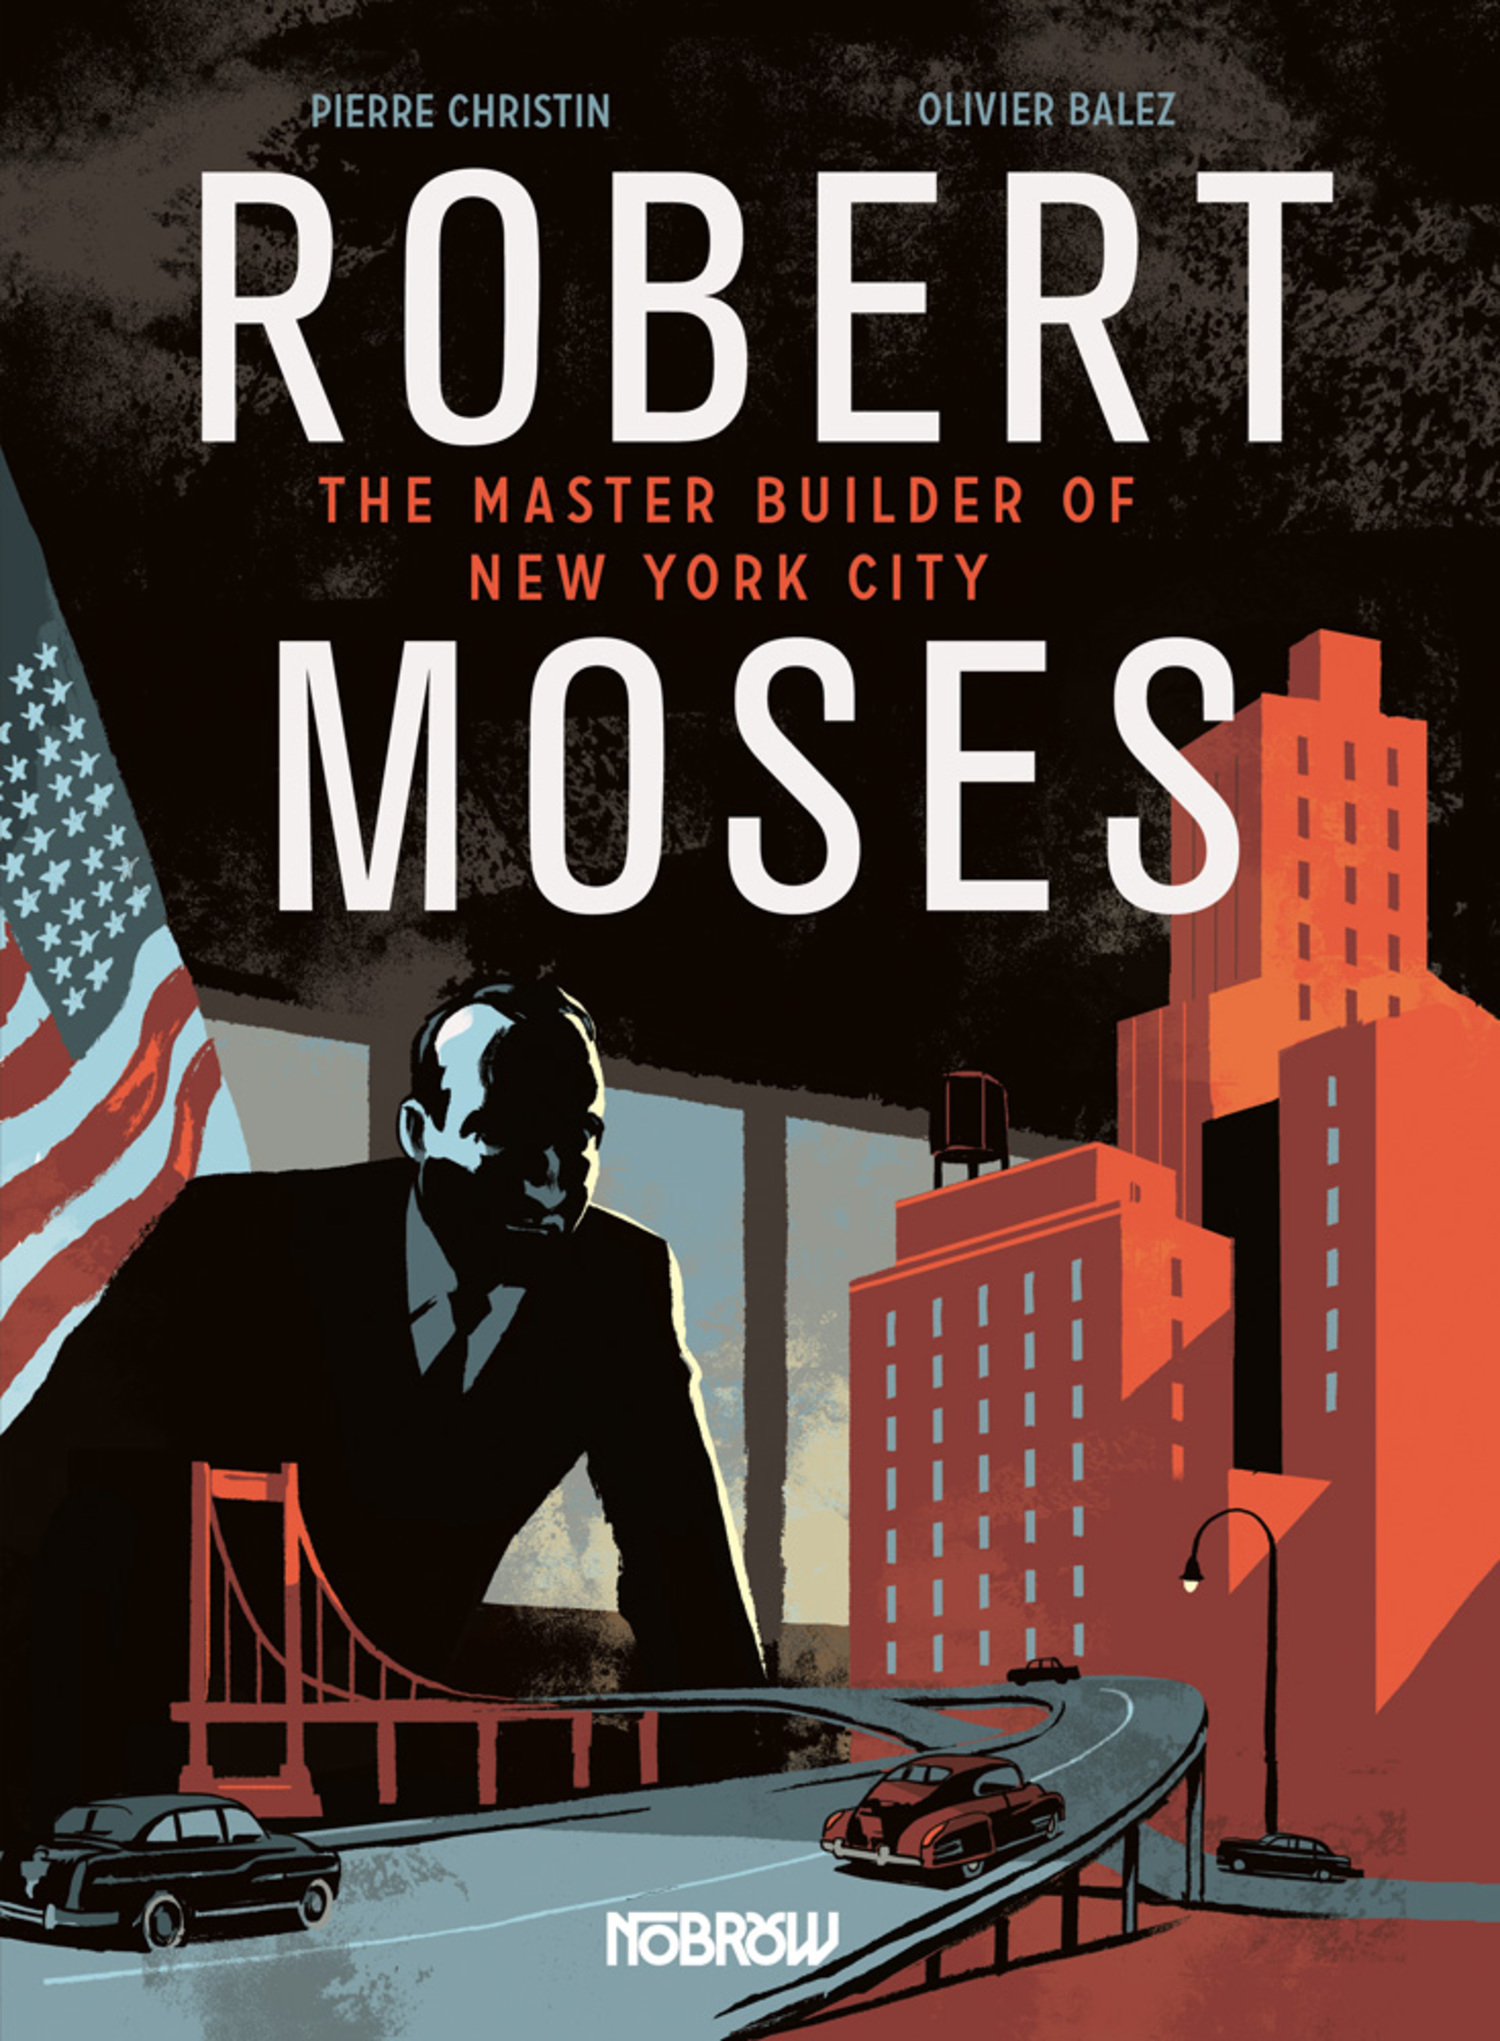 A new graphic biography explores the life of Robert Moses, a powerful figure in New York City history.